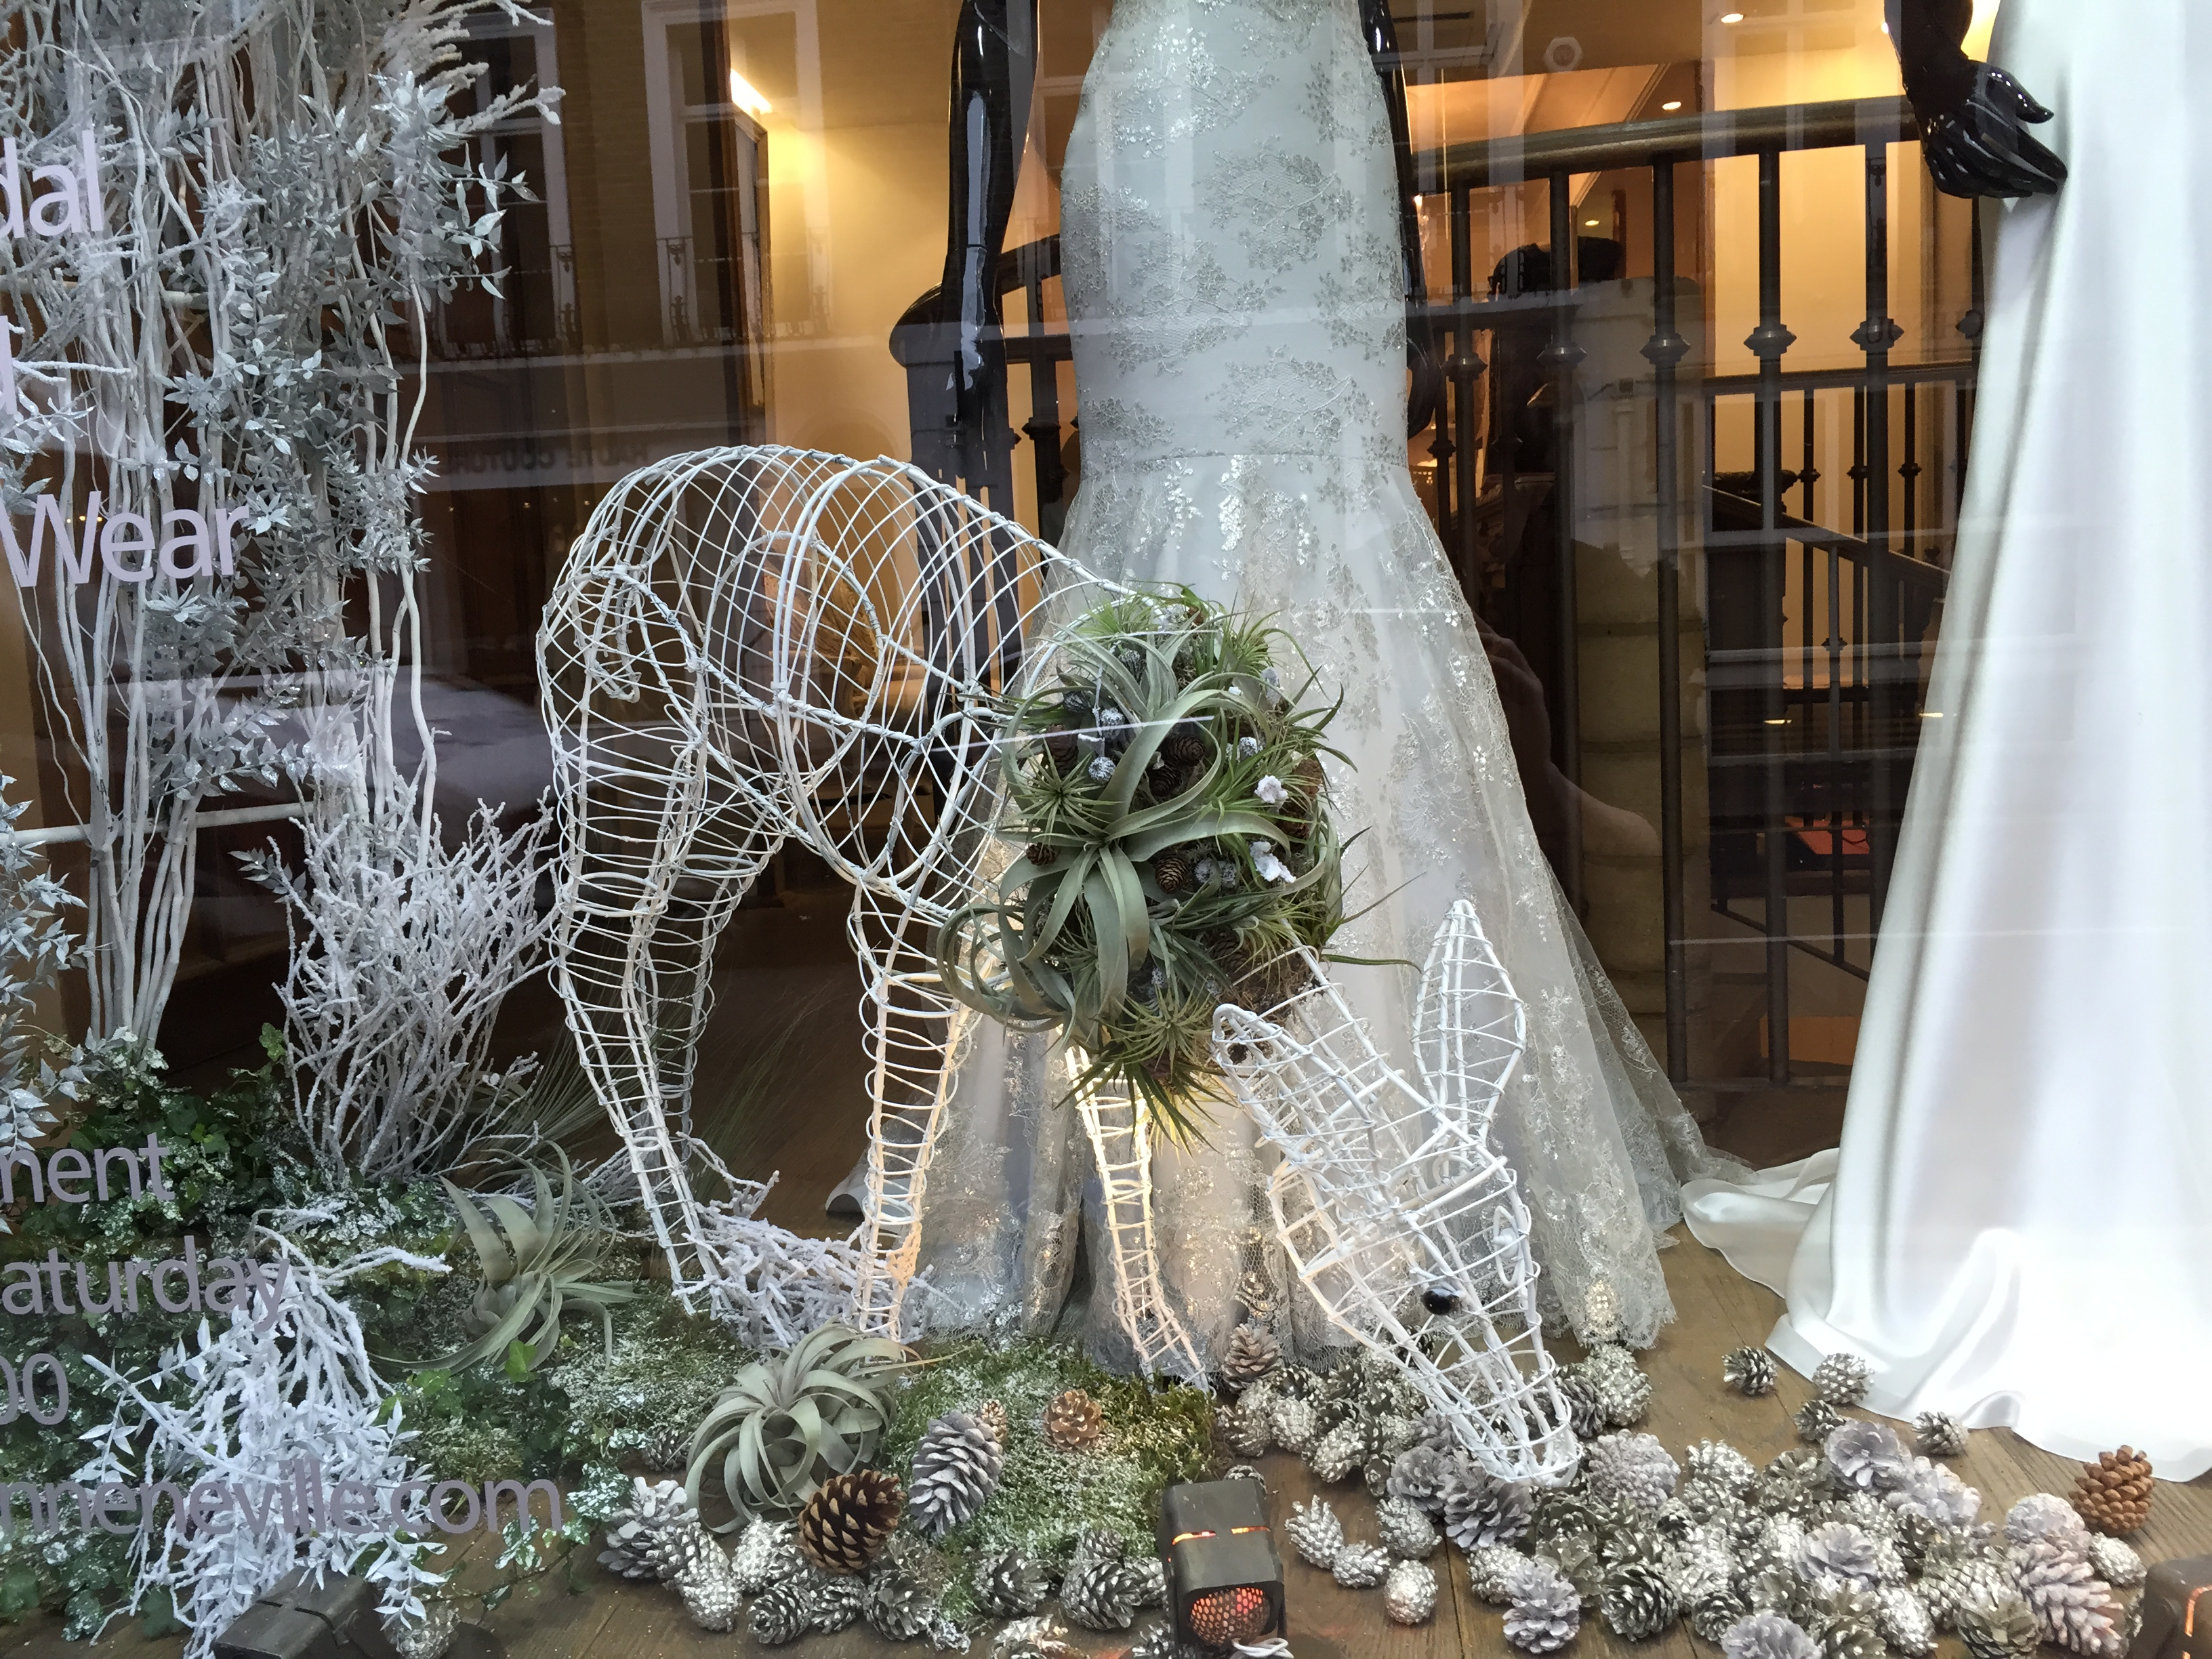 Bloomingayles window install Suzanne Neville 2014 Christmas